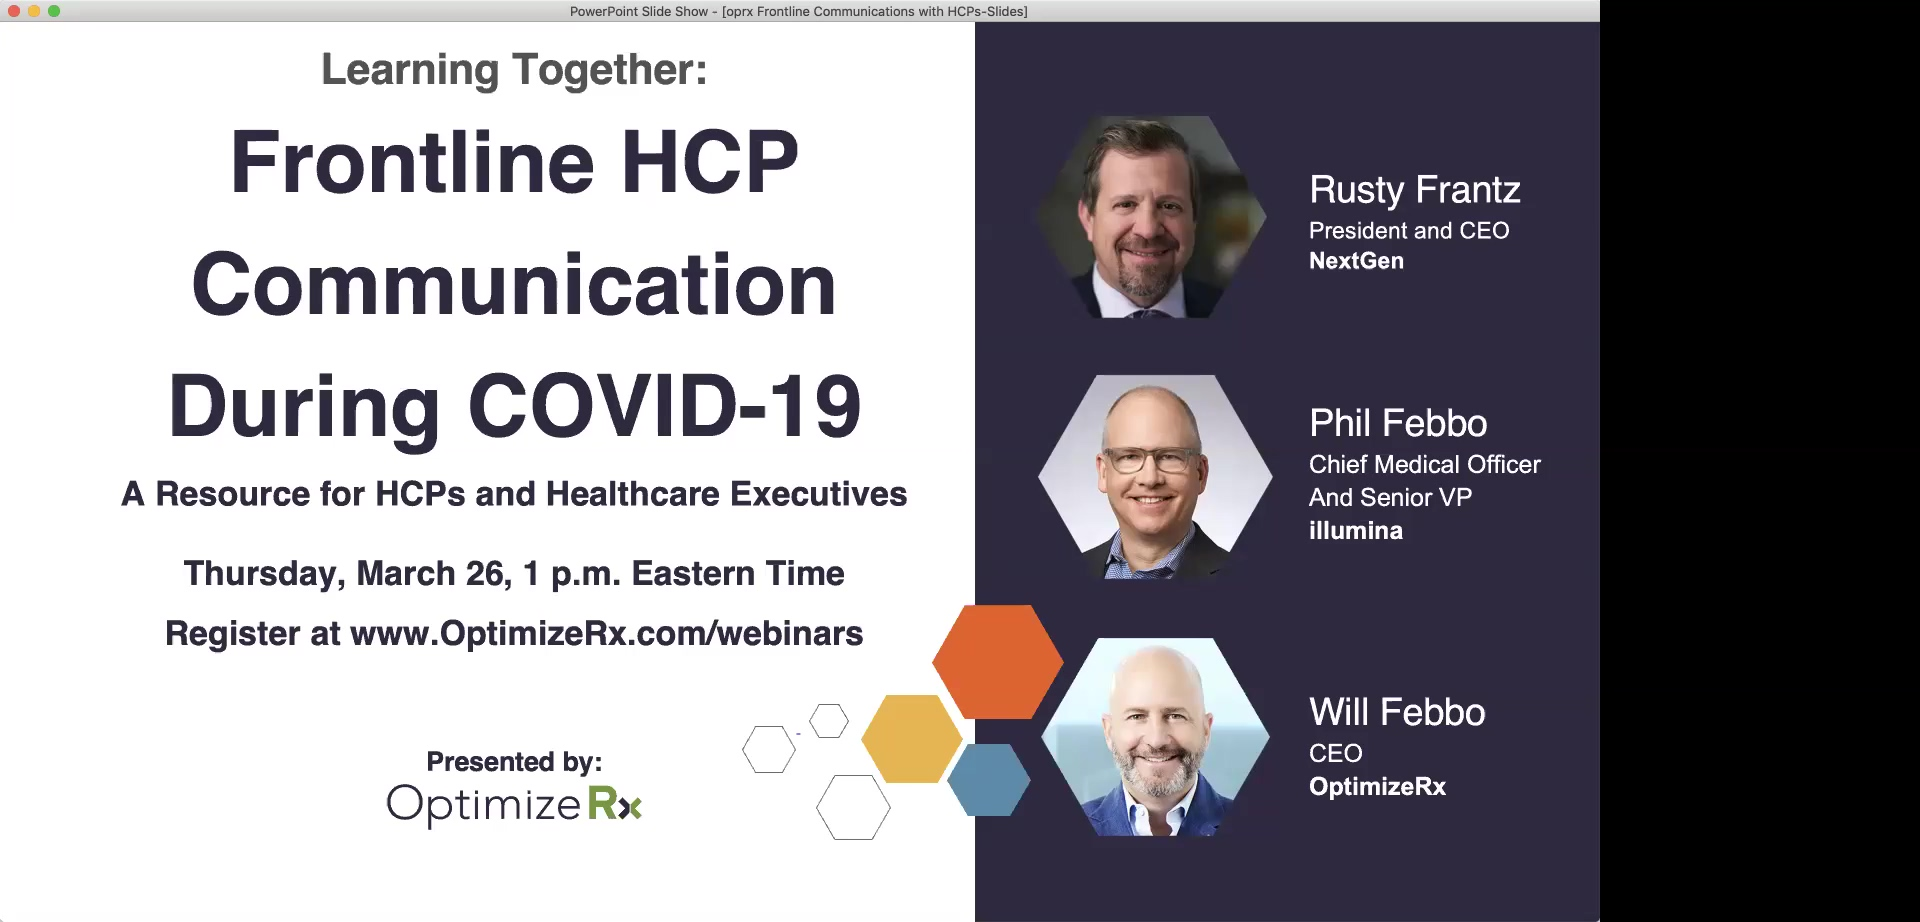 Frontline-HCP-Communication-During-Covid-19